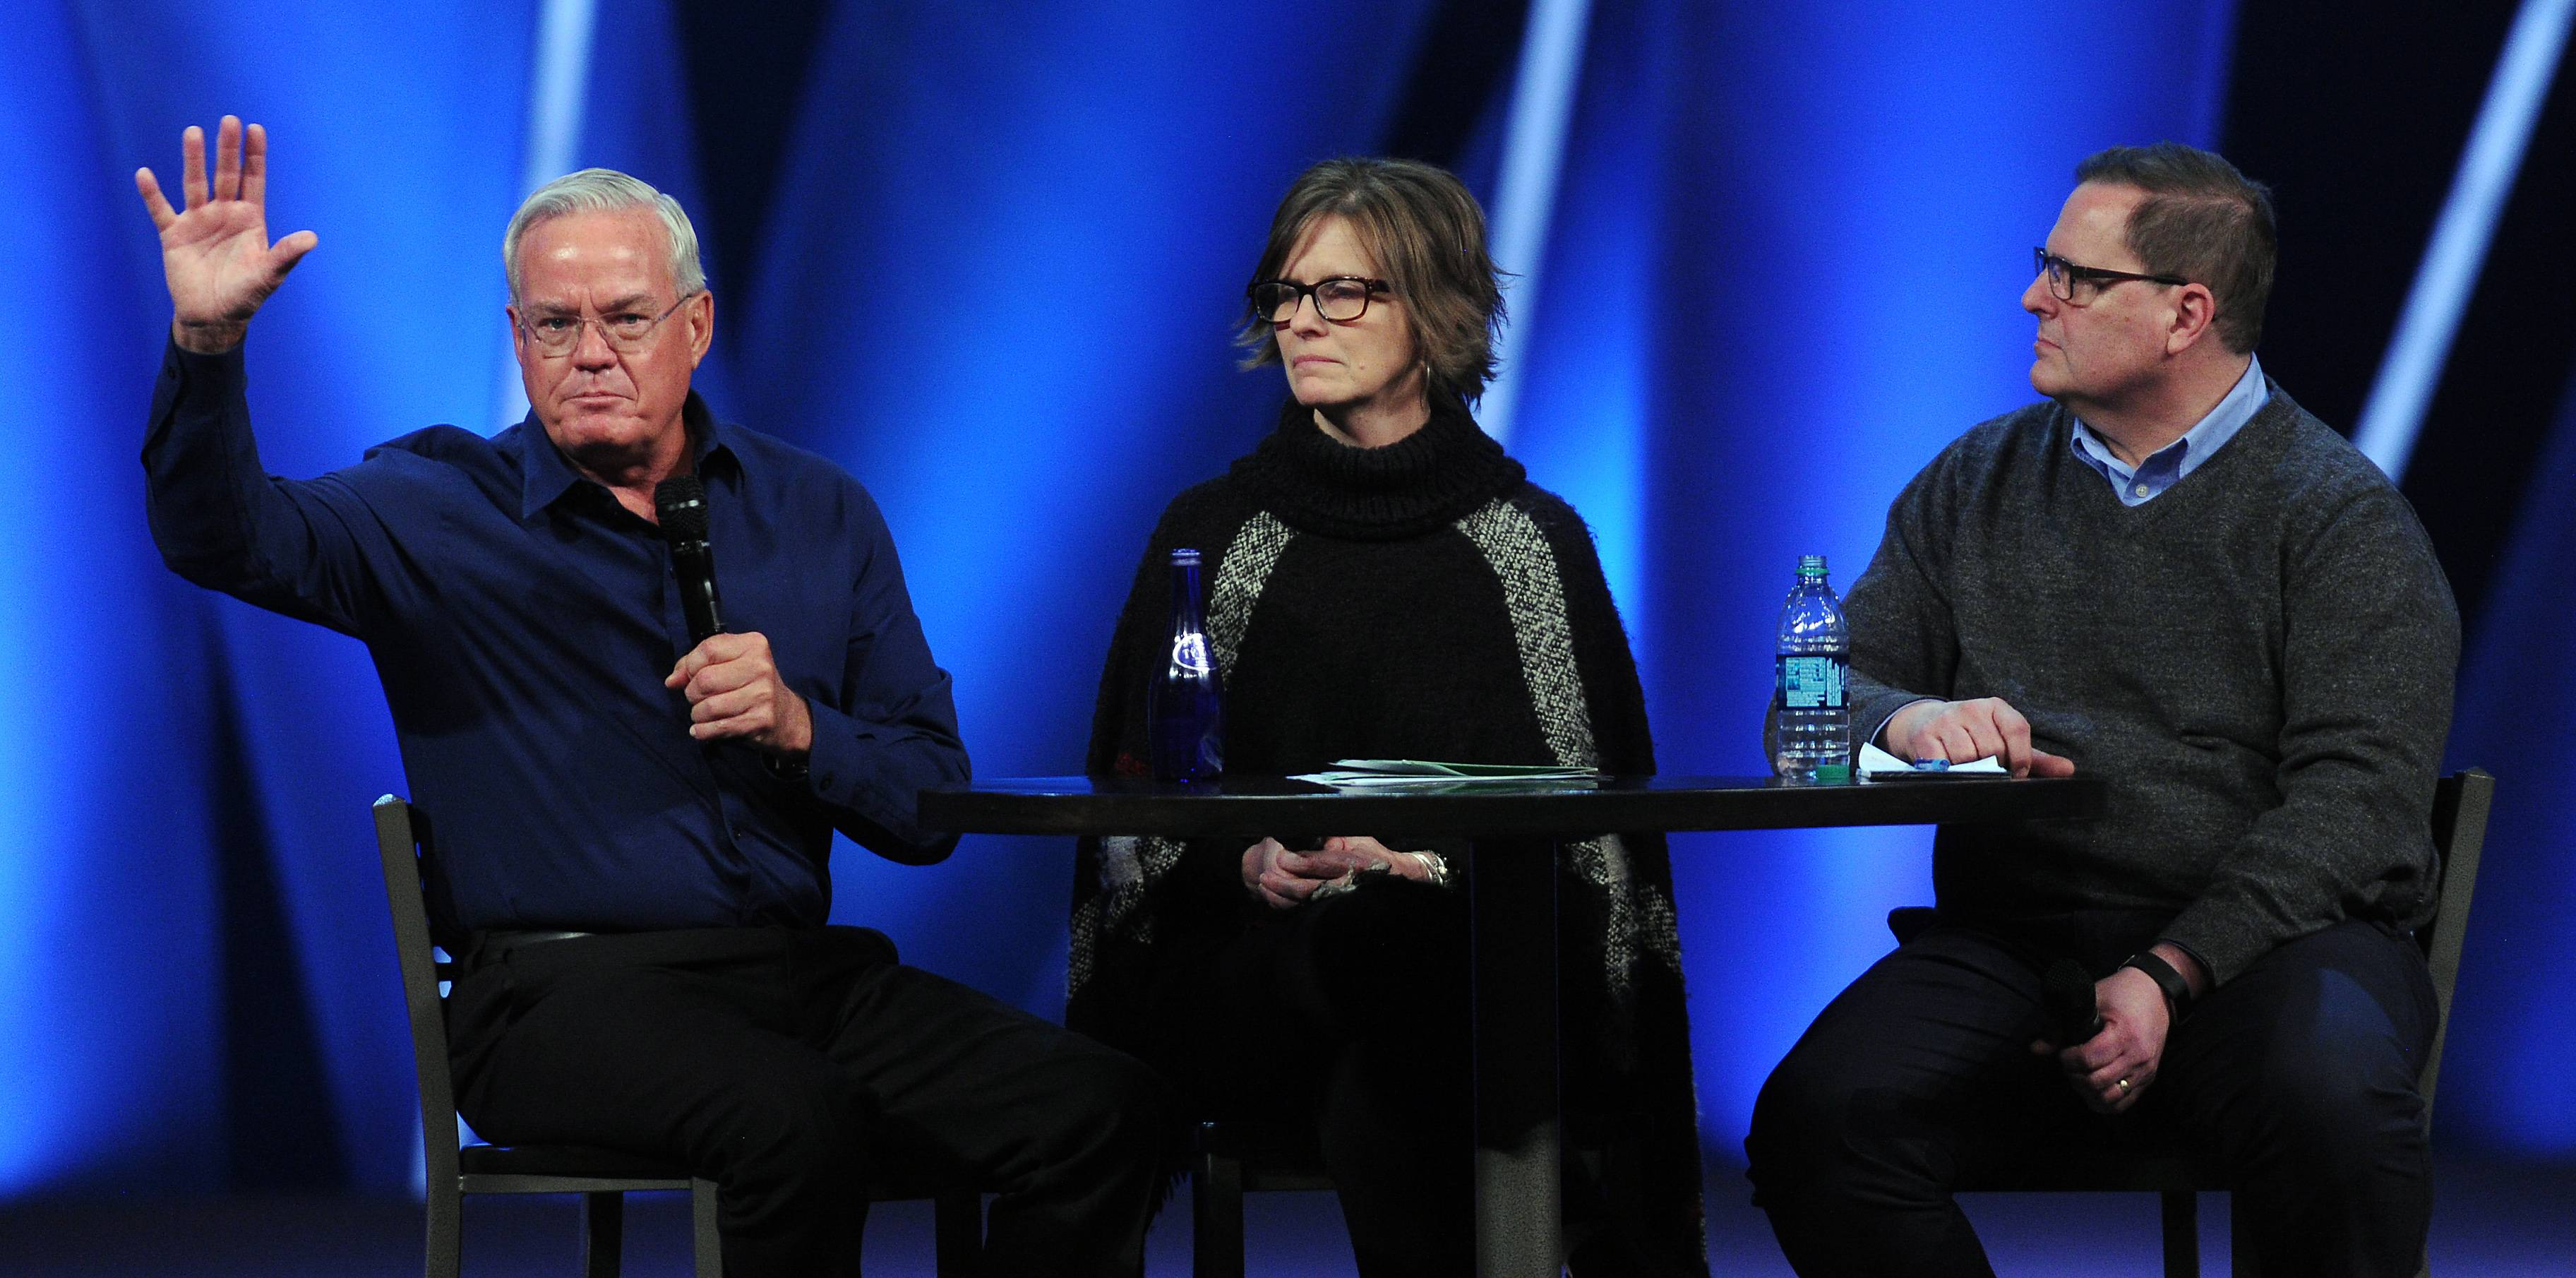 Willow Creek's Hybels: 'I respect women. I have never been unfaithful'